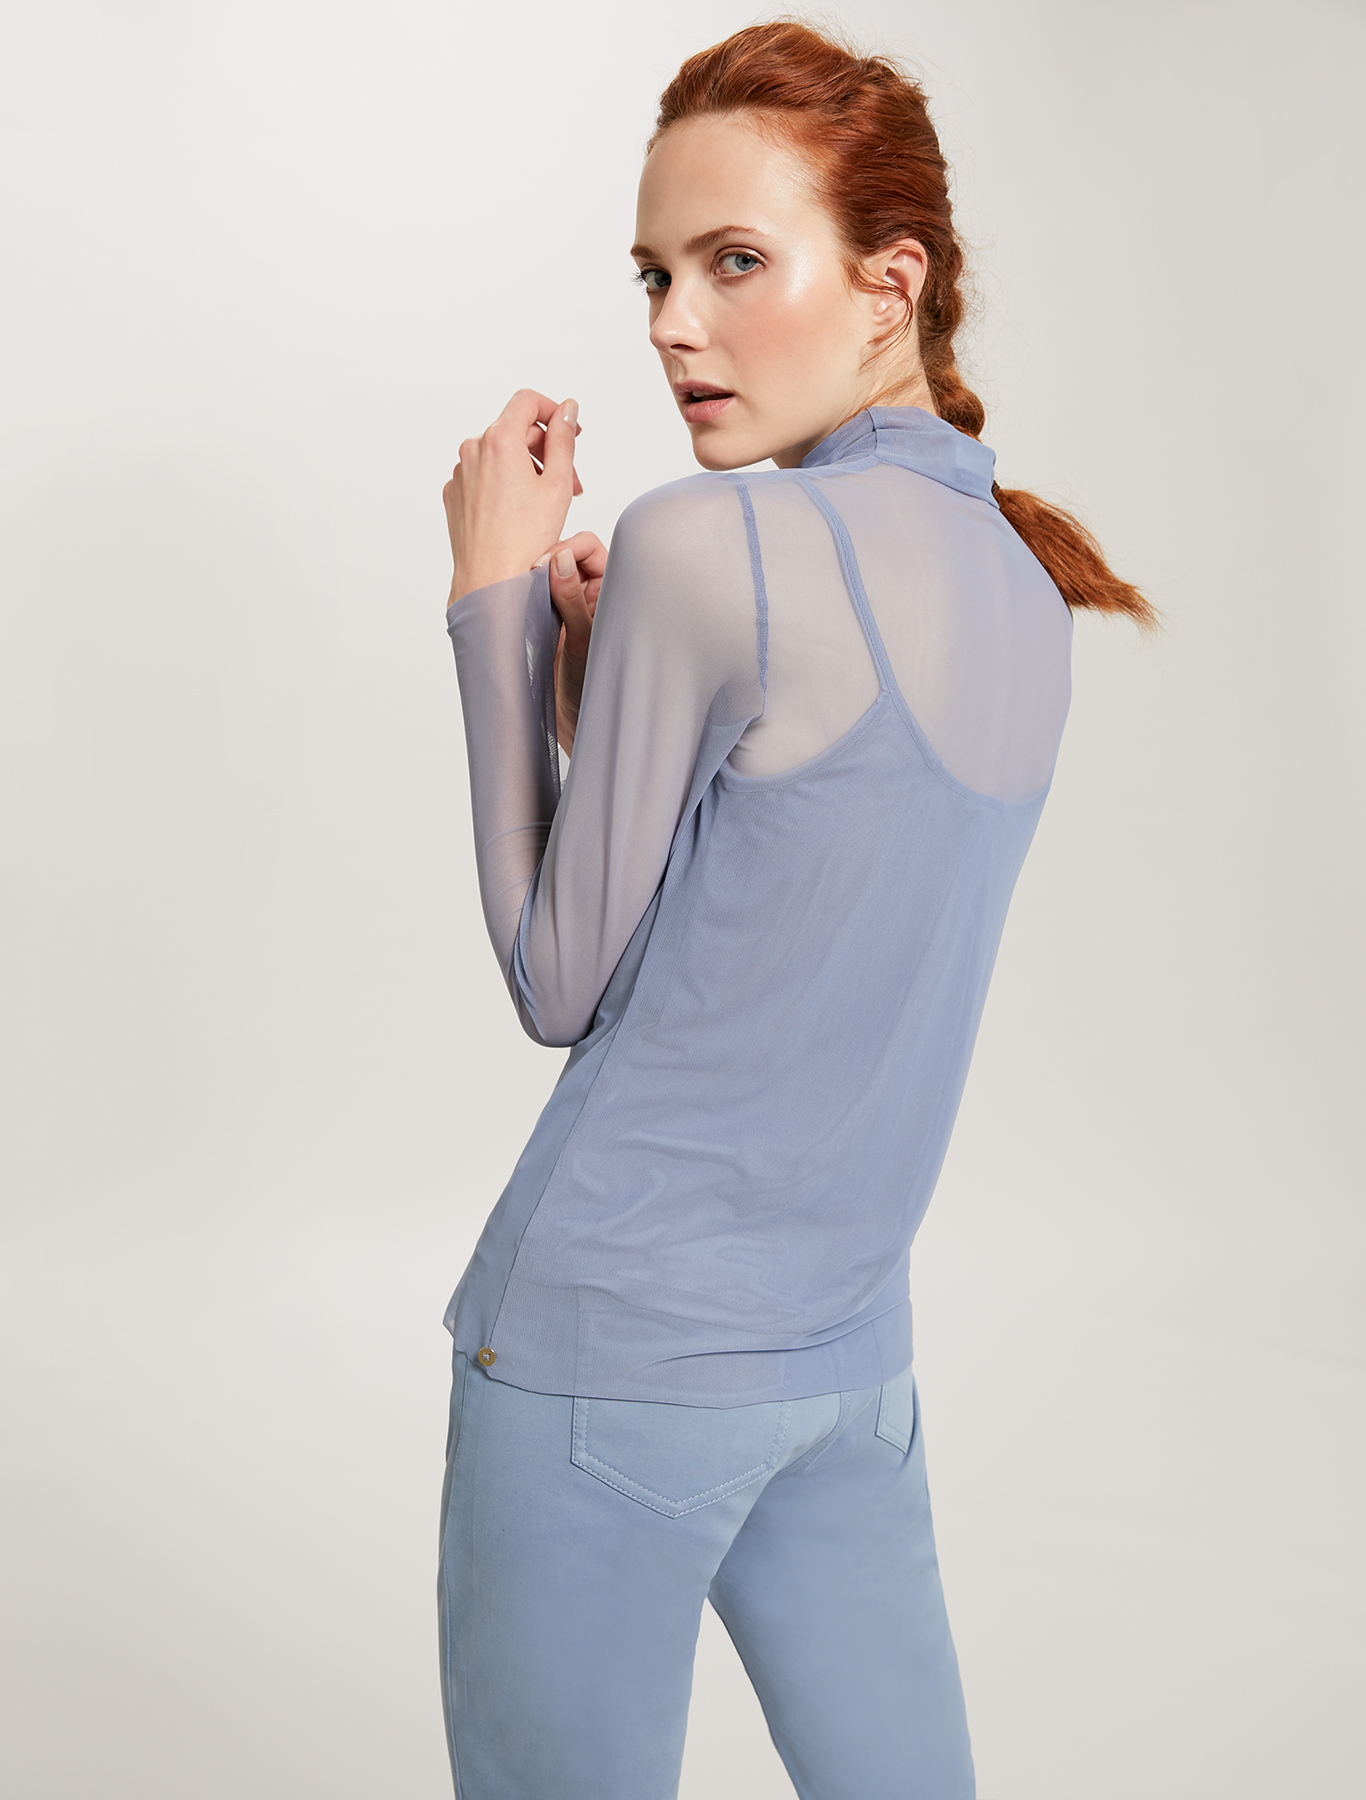 Turtleneck T-shirt in stretch tulle - air force blue - pennyblack